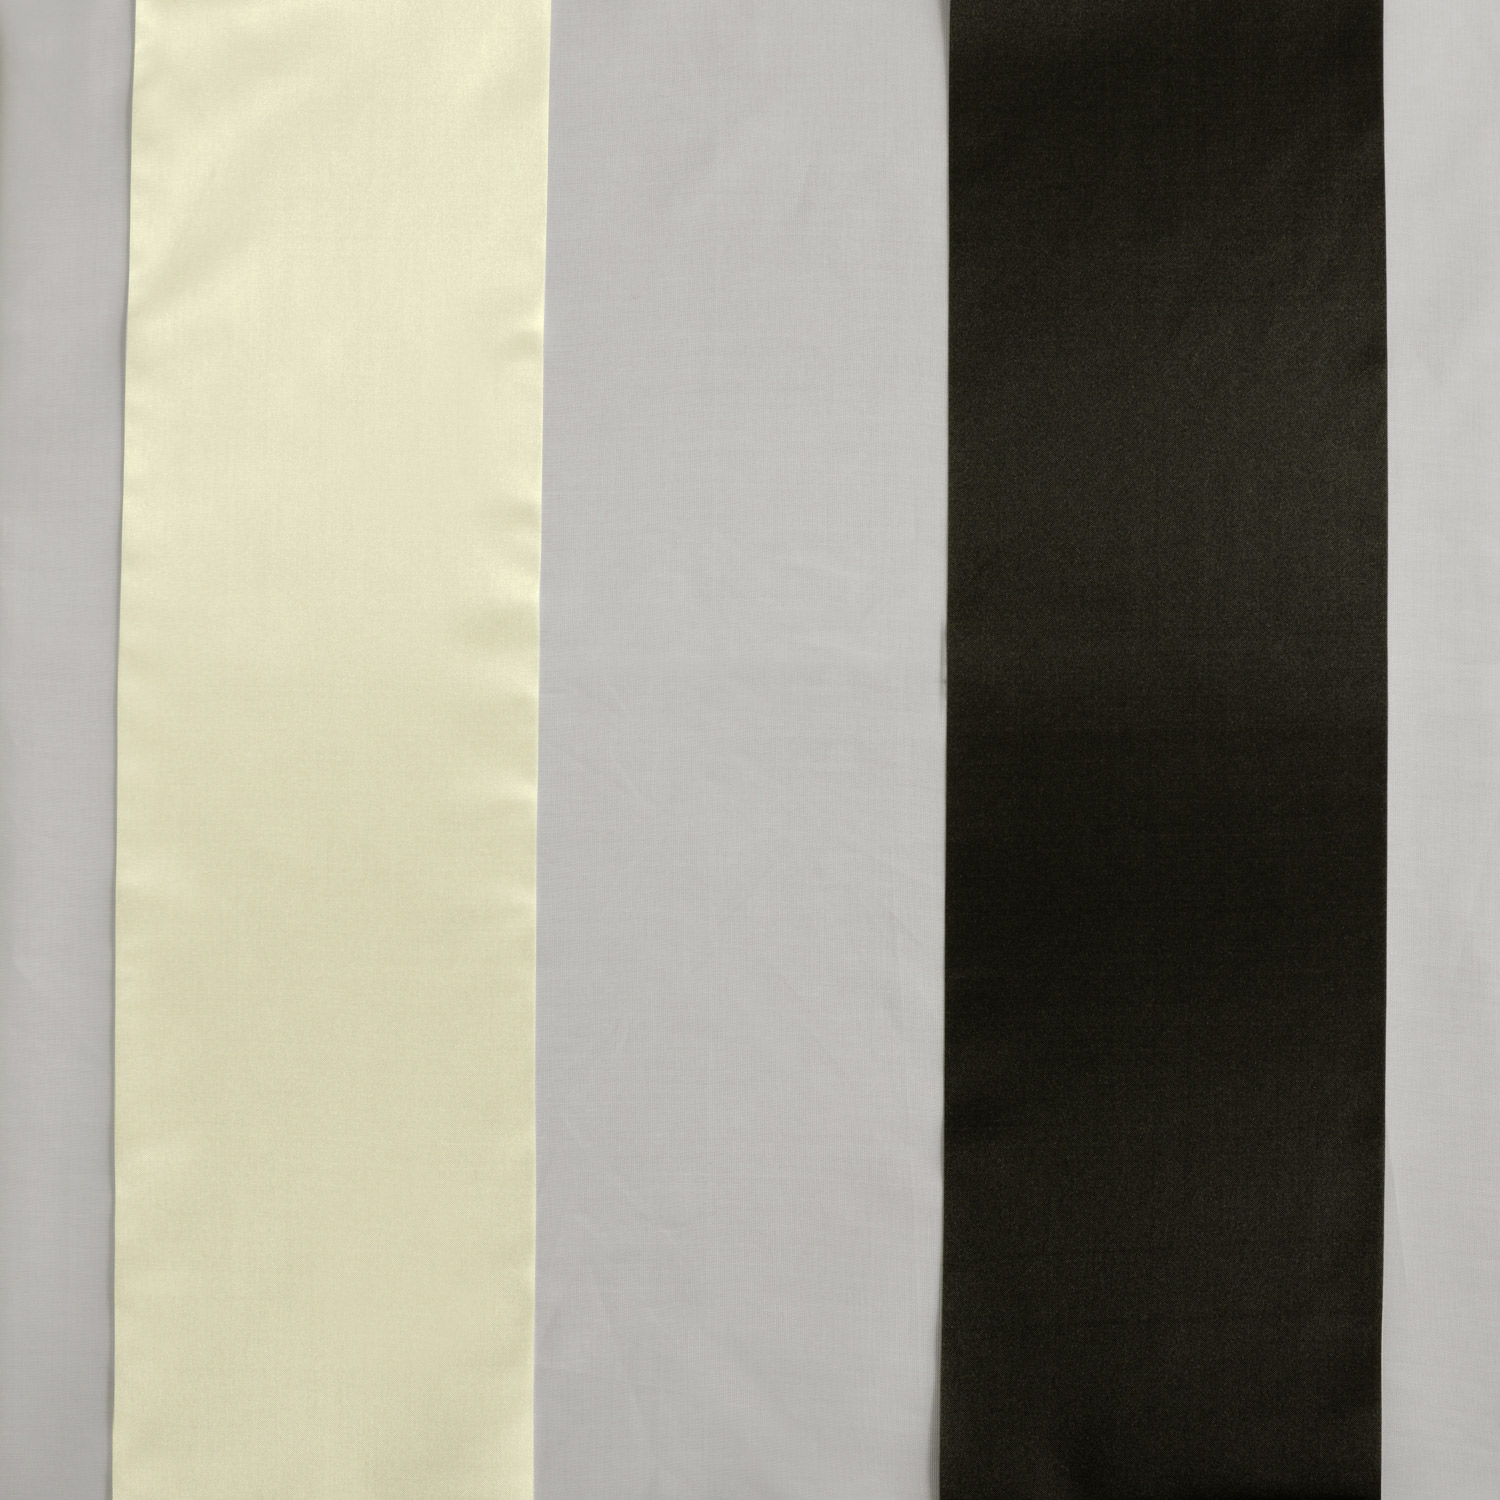 Polished Silver & Black Organza Vertical Stripe Sheer Swatch